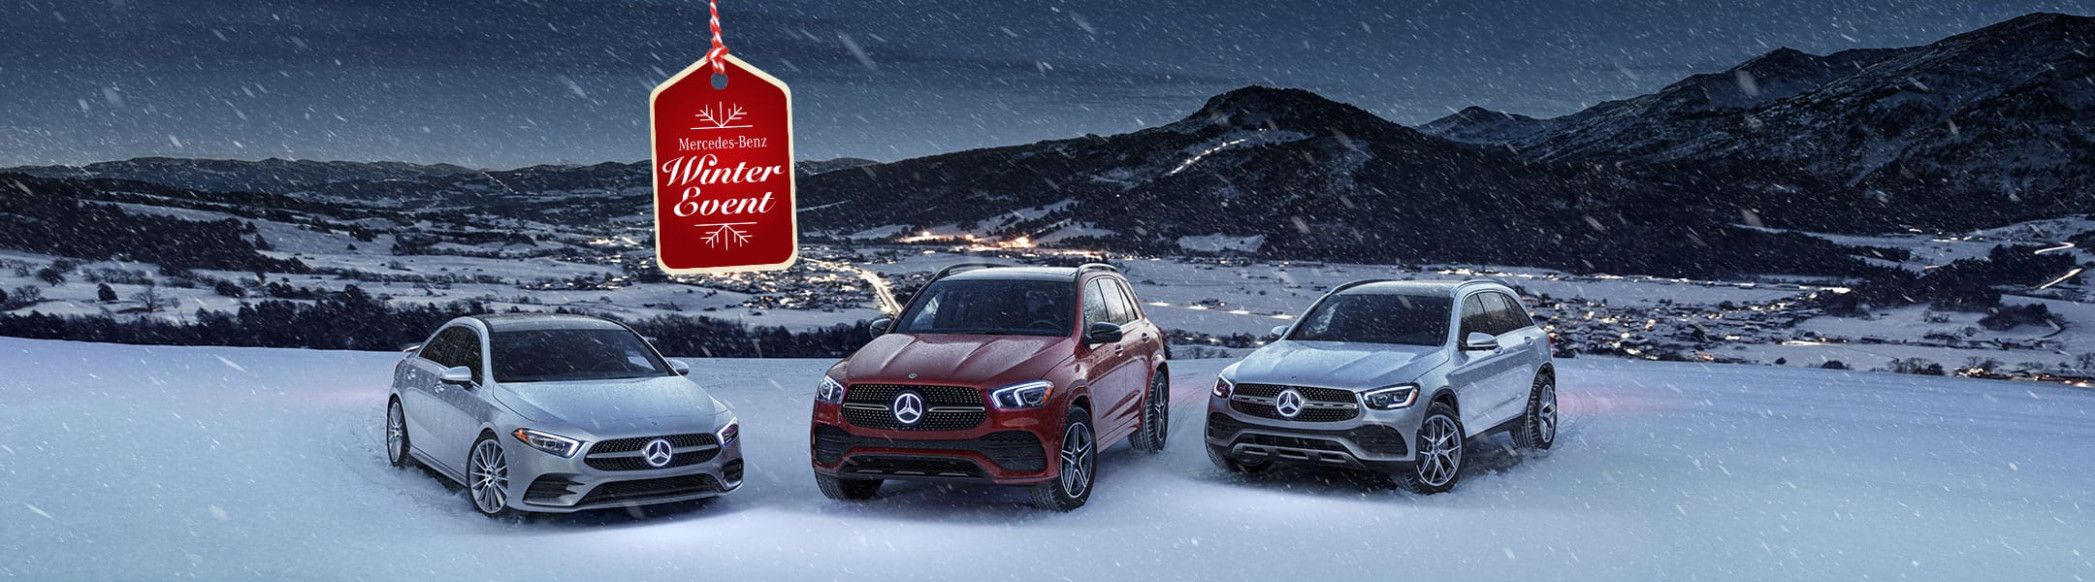 Special Offers | Mercedes-Benz USA - mercedes 2020 offers